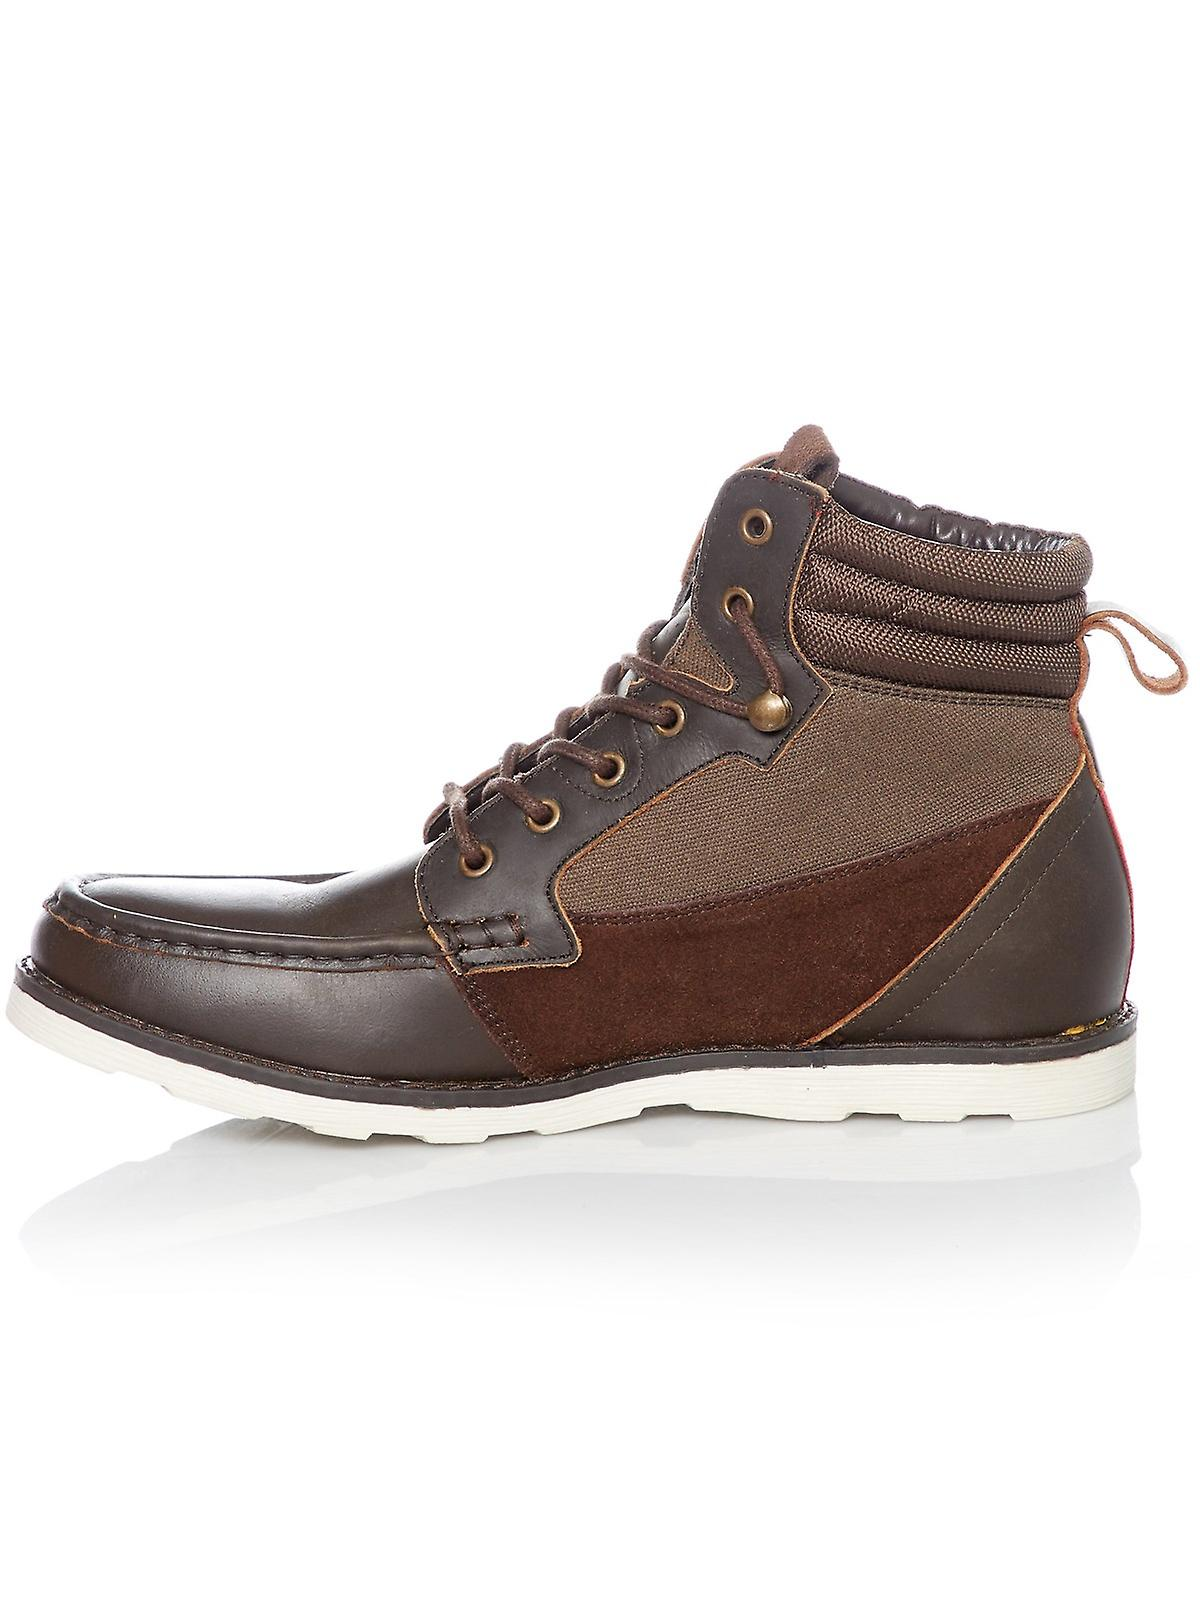 12ad4a2dce3 DVS Brown Bishop Winter Boots